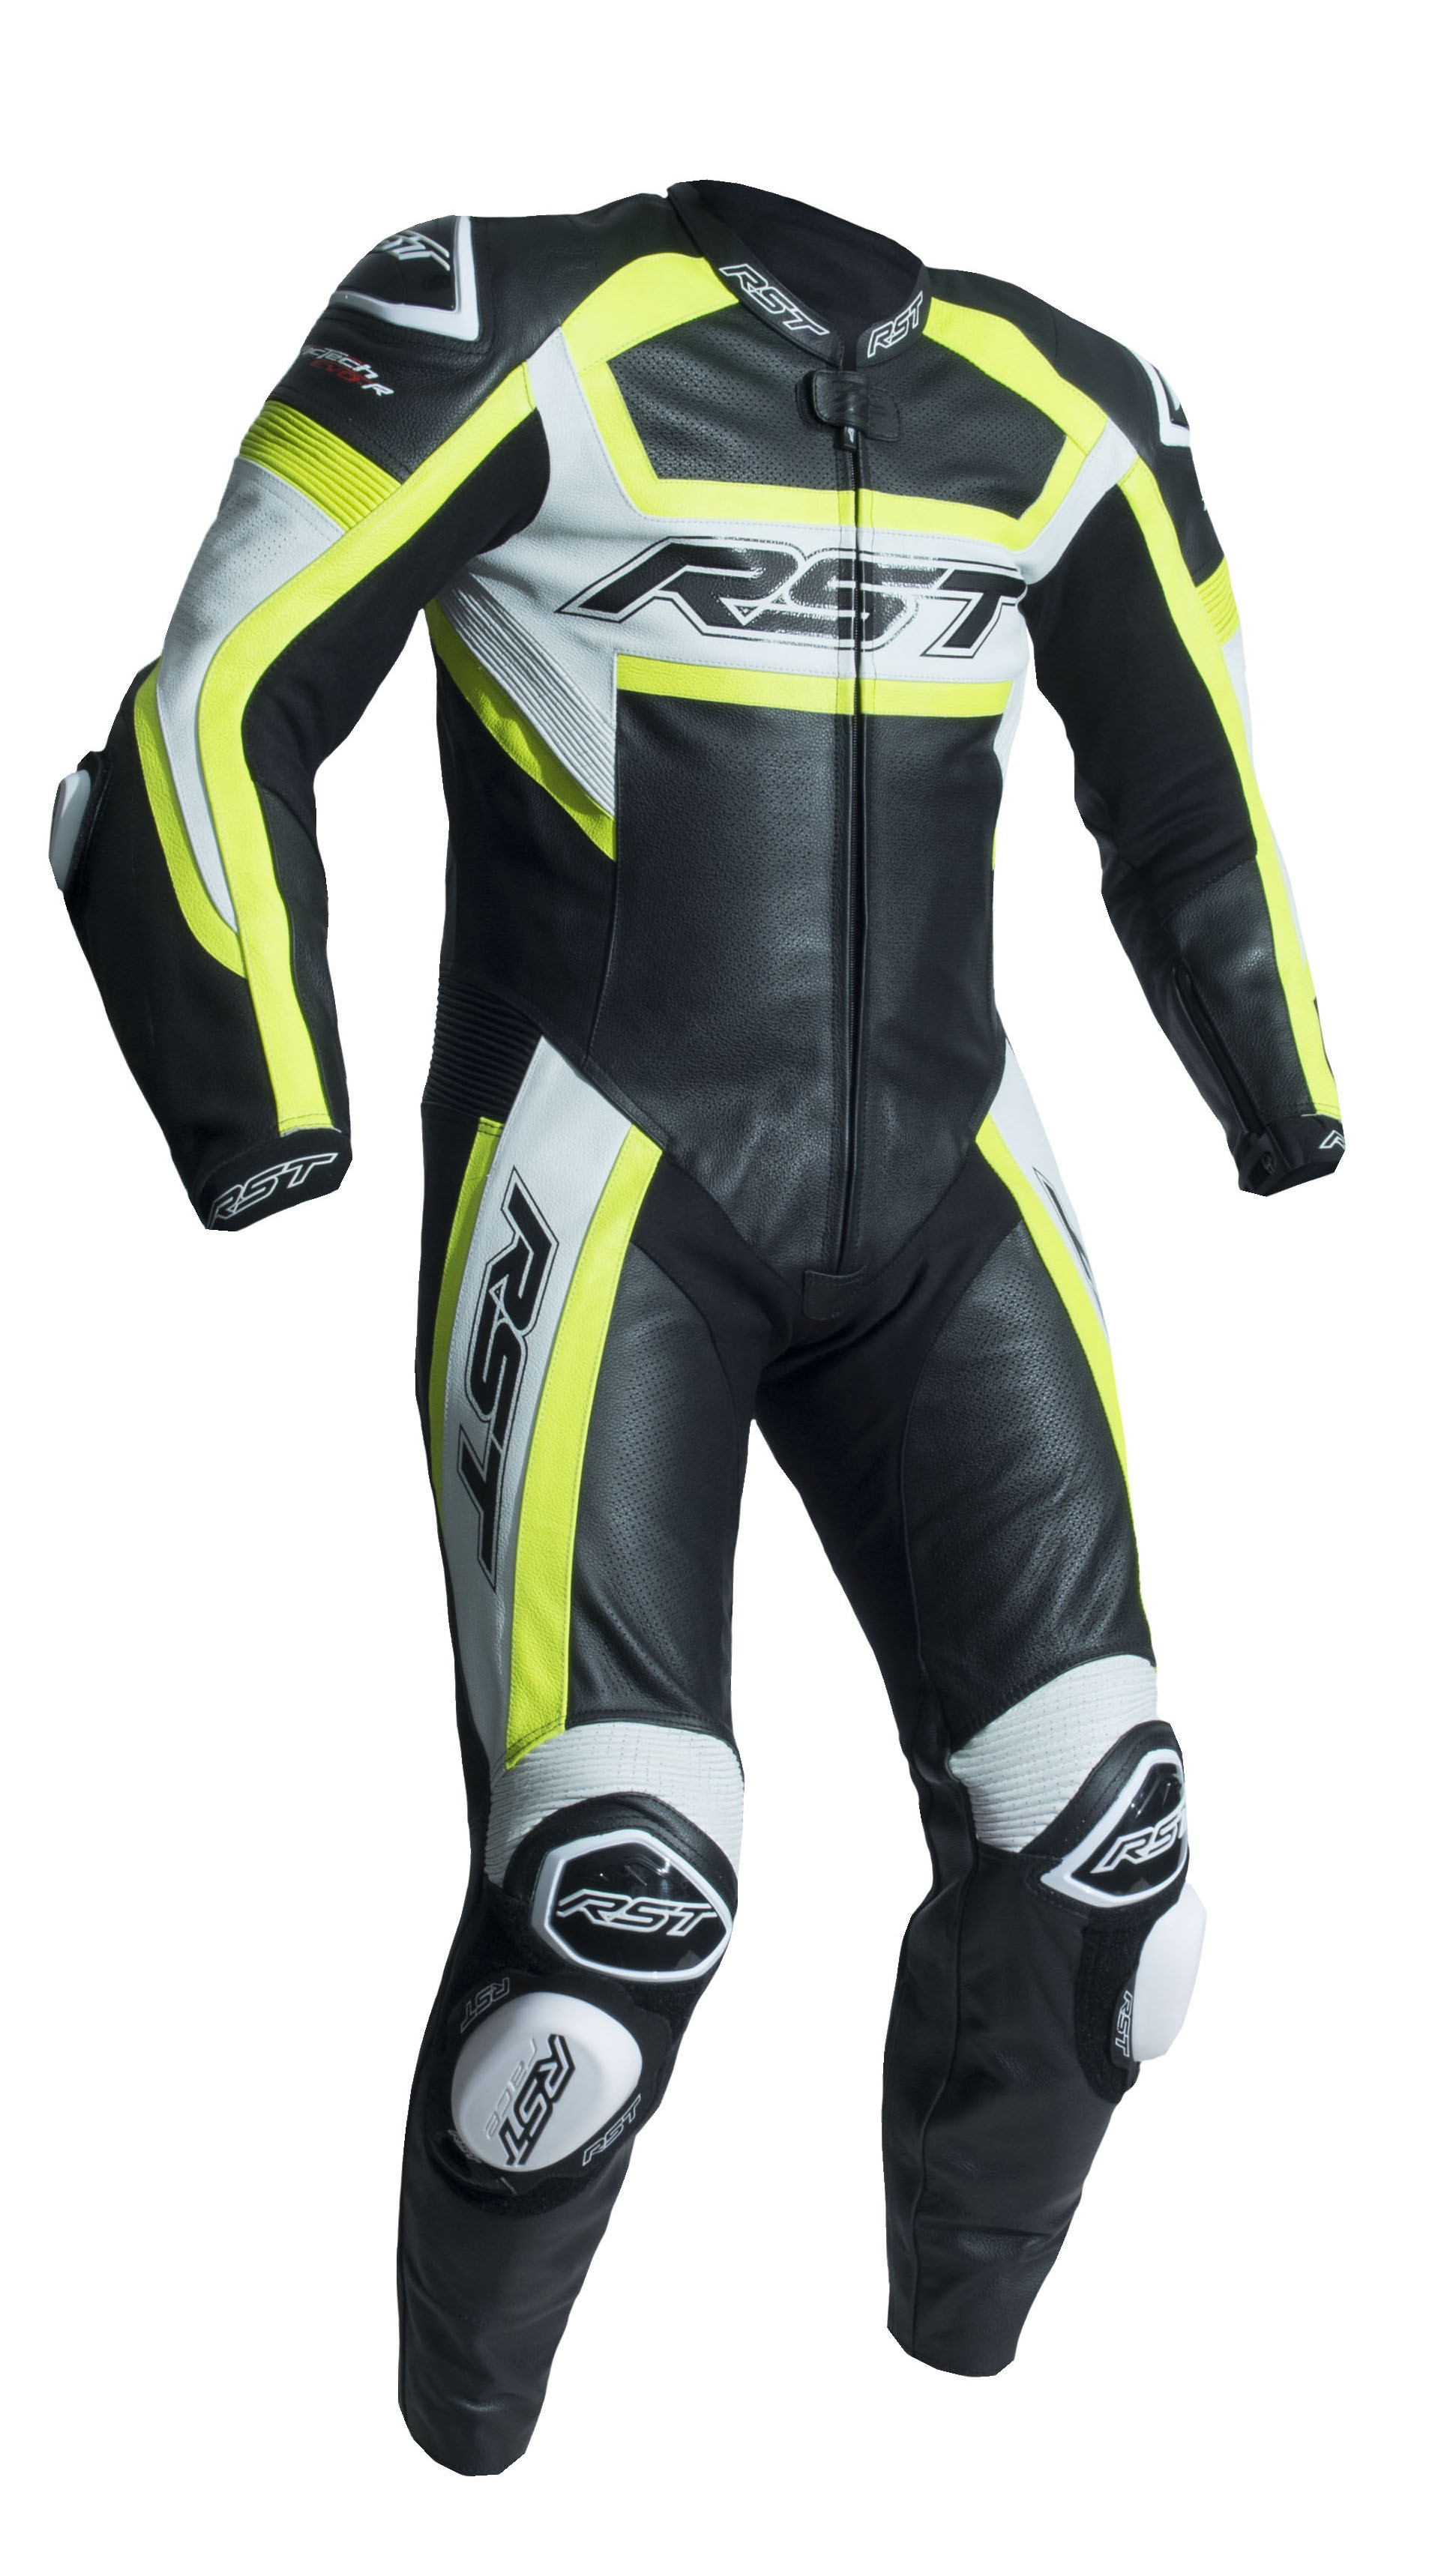 RST TracTech Evo R CE one piece leather suit